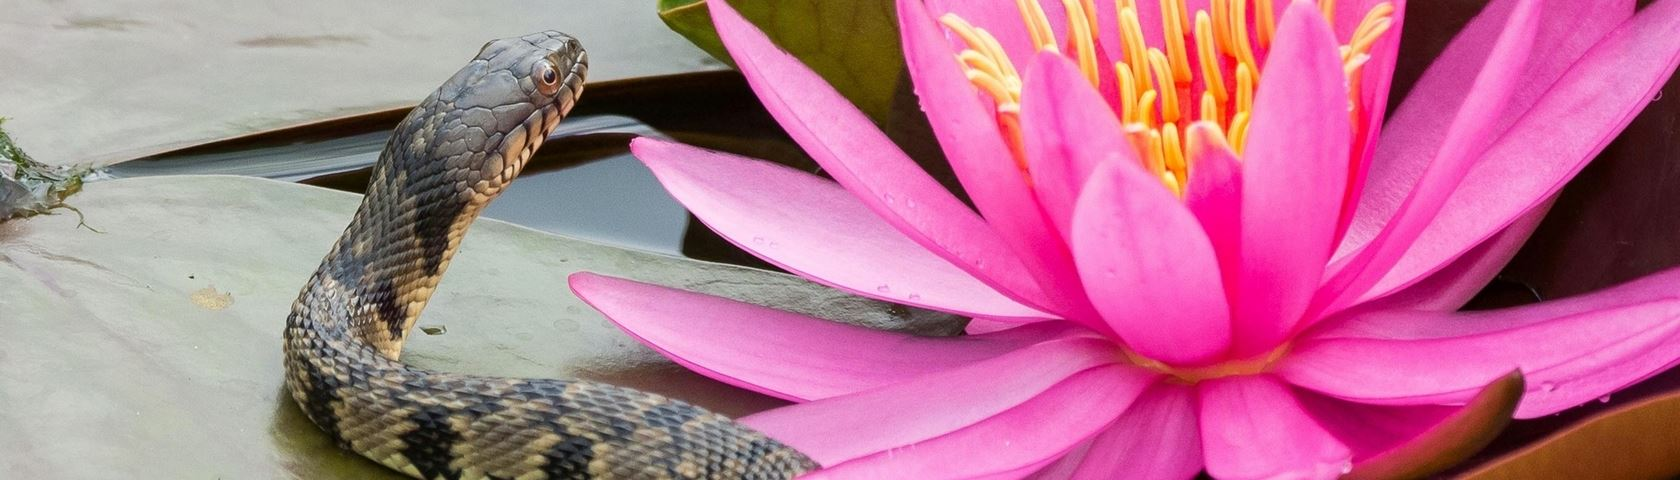 The Serpent and the Waterlily